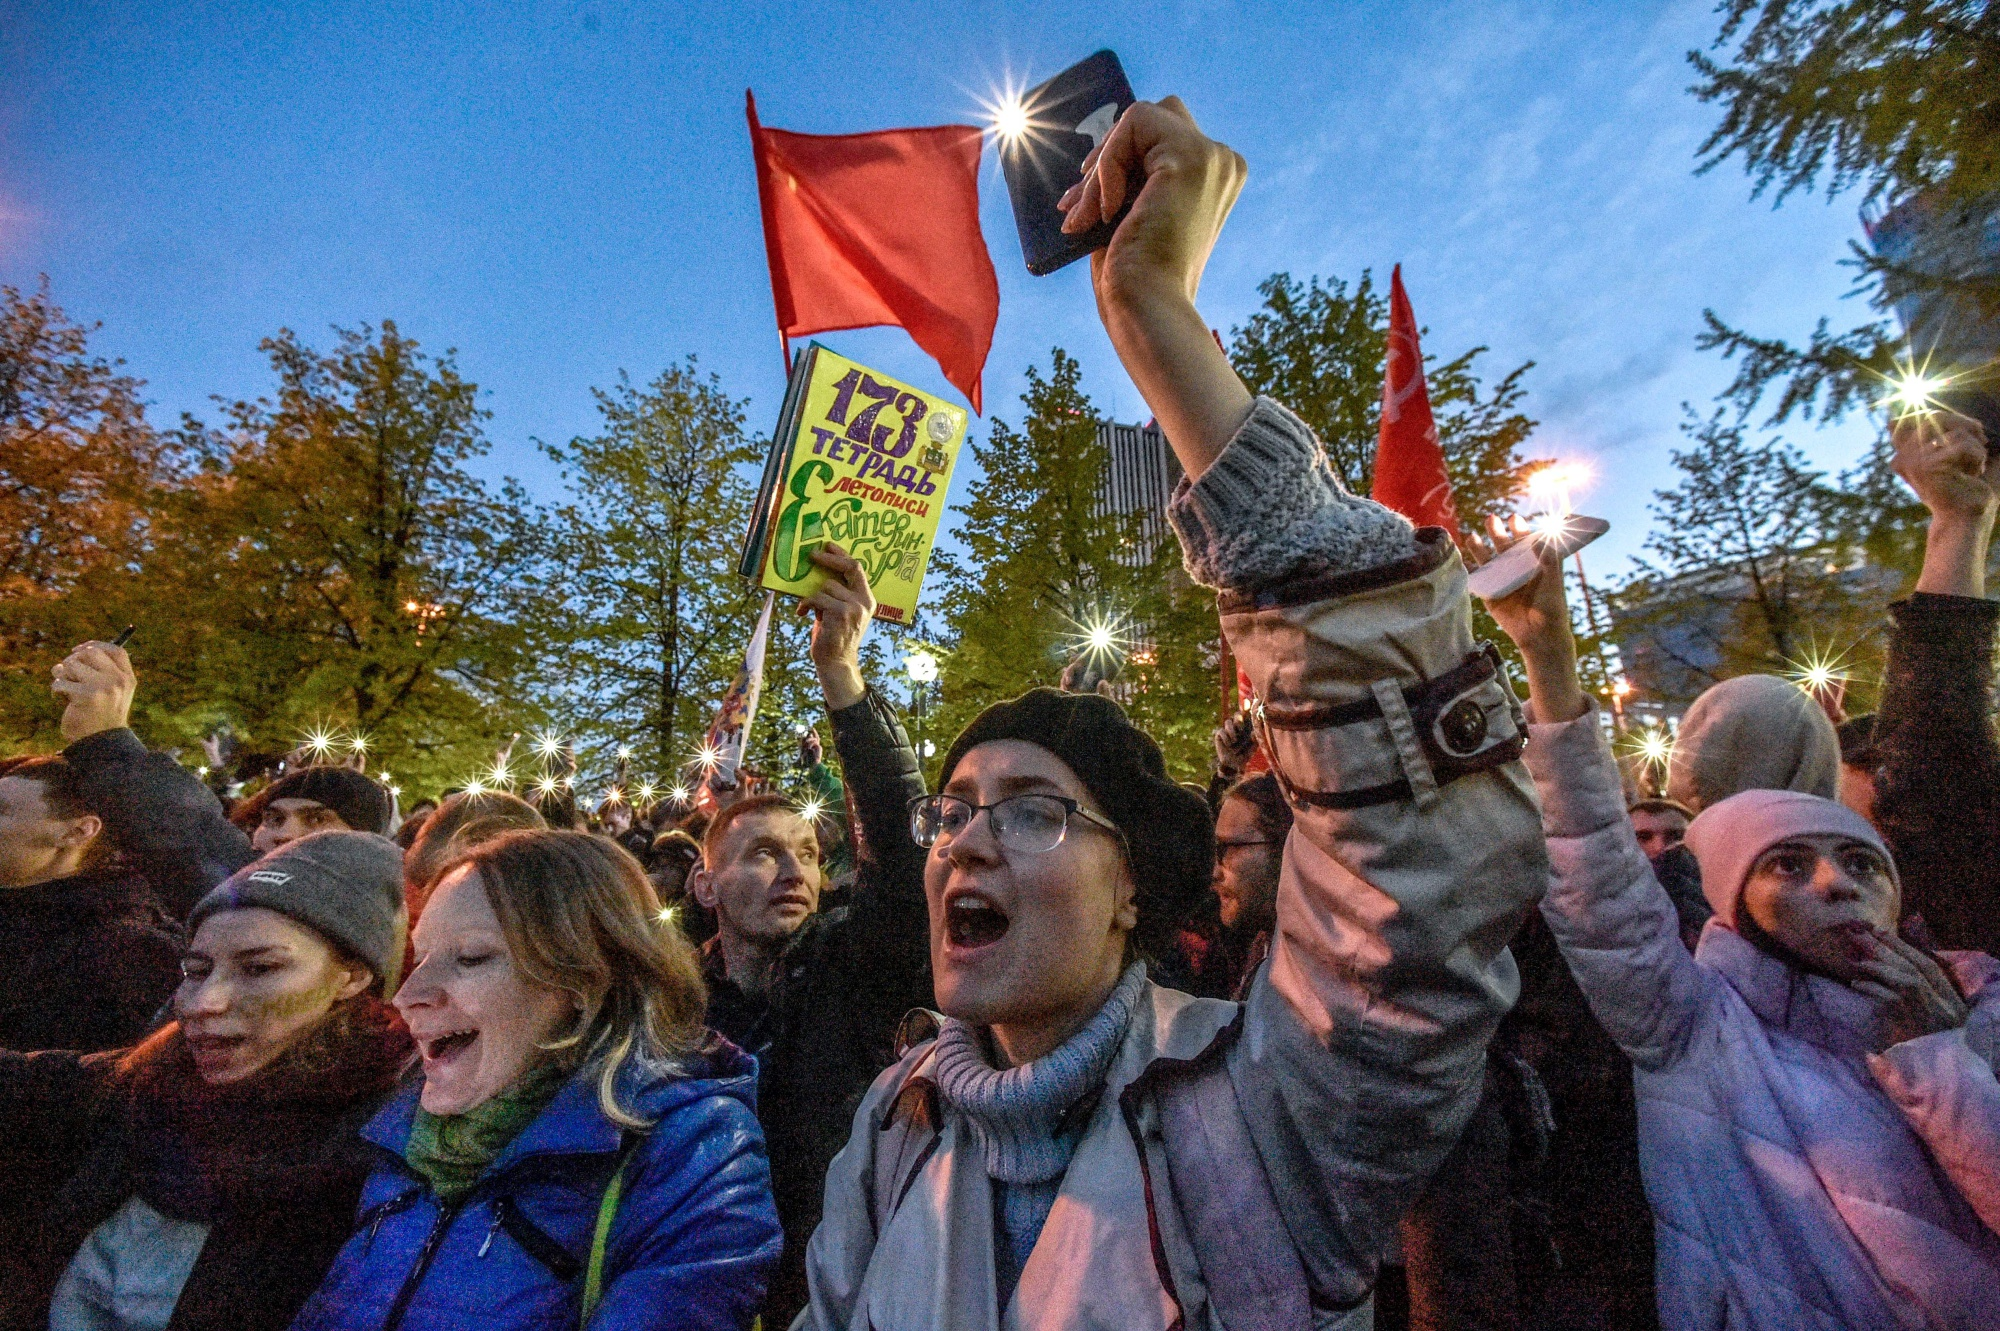 bloomberg.com - Evgenia Pismennaya - Kremlin Struggles to Defuse Protests in Putin Heartland